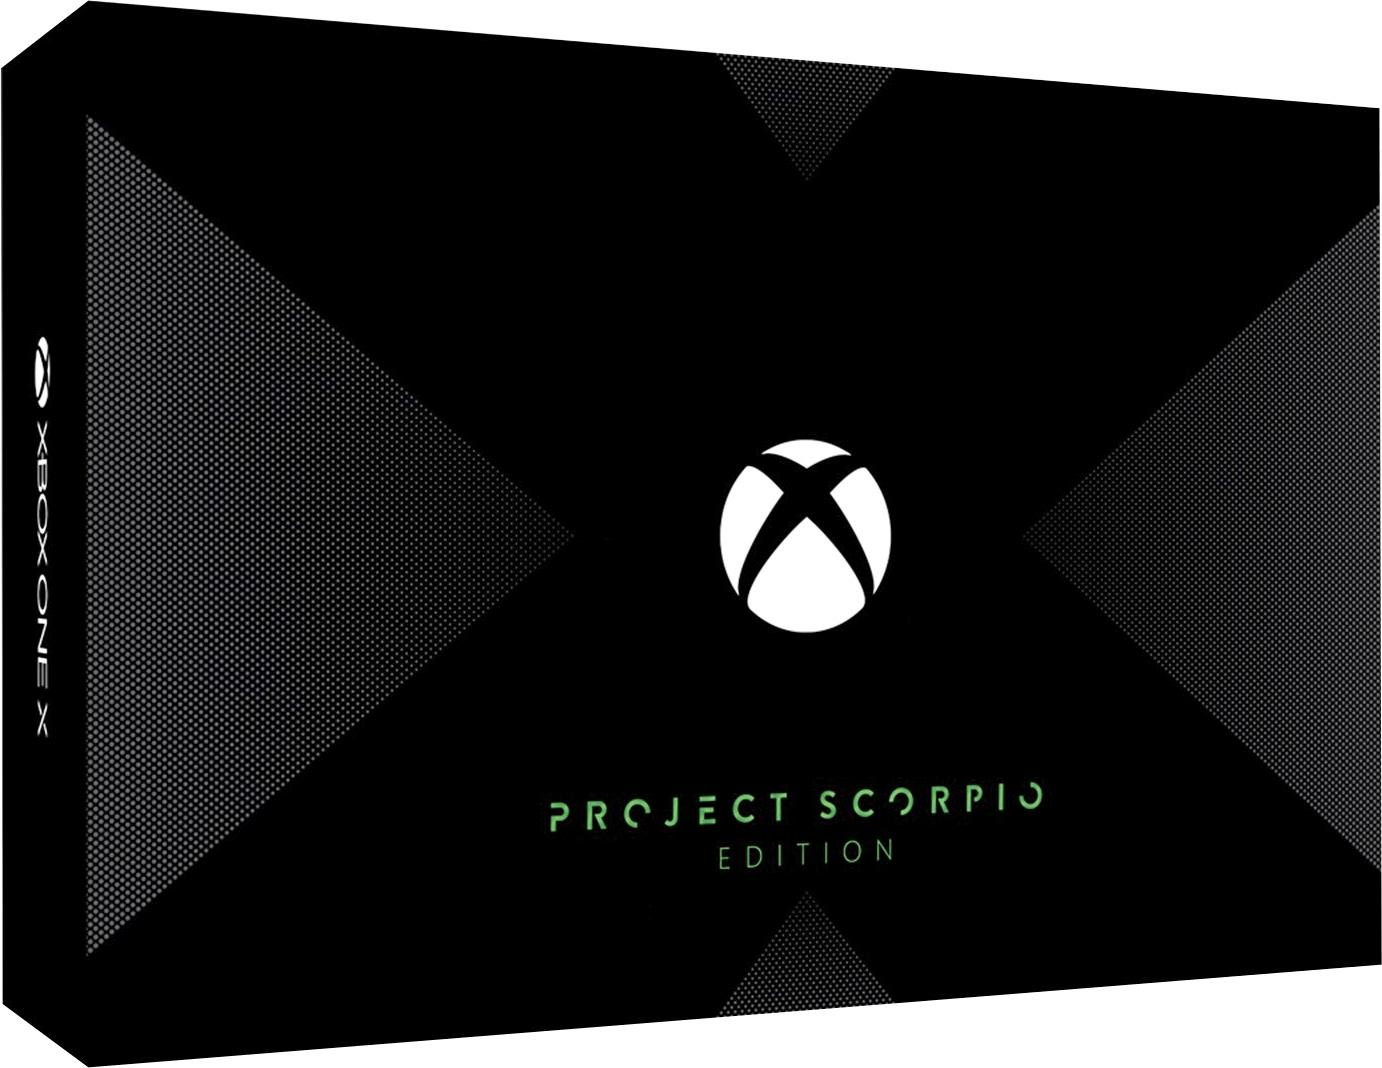 xbox-one-project-scorpio-packaging